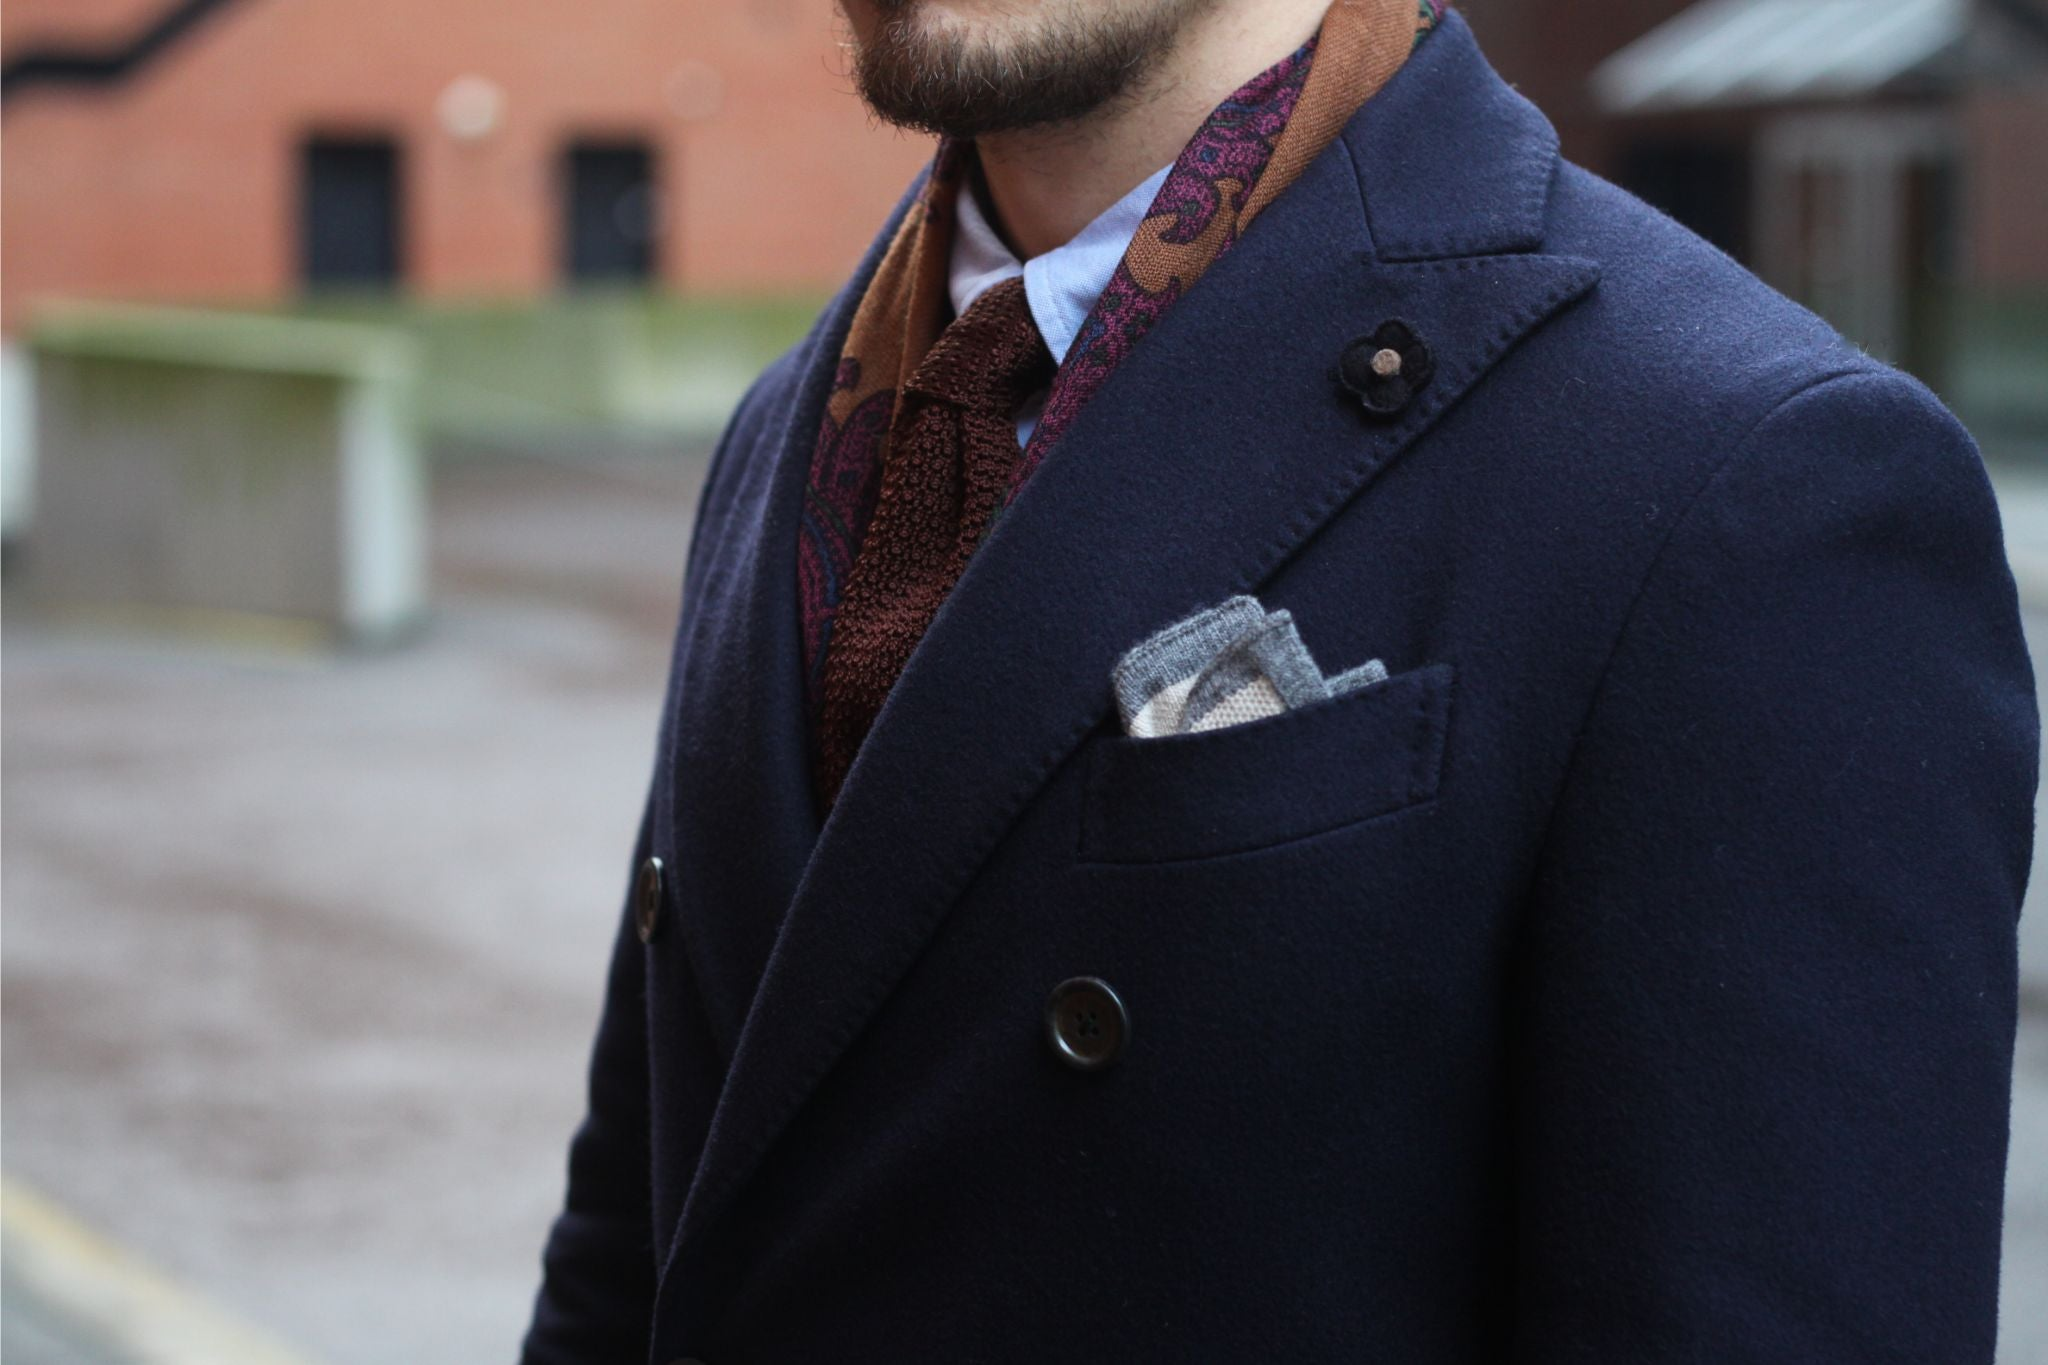 Blue jersey sport coat with corduroy trousers - Lardini dark blue wool overcoat with wool pocket square